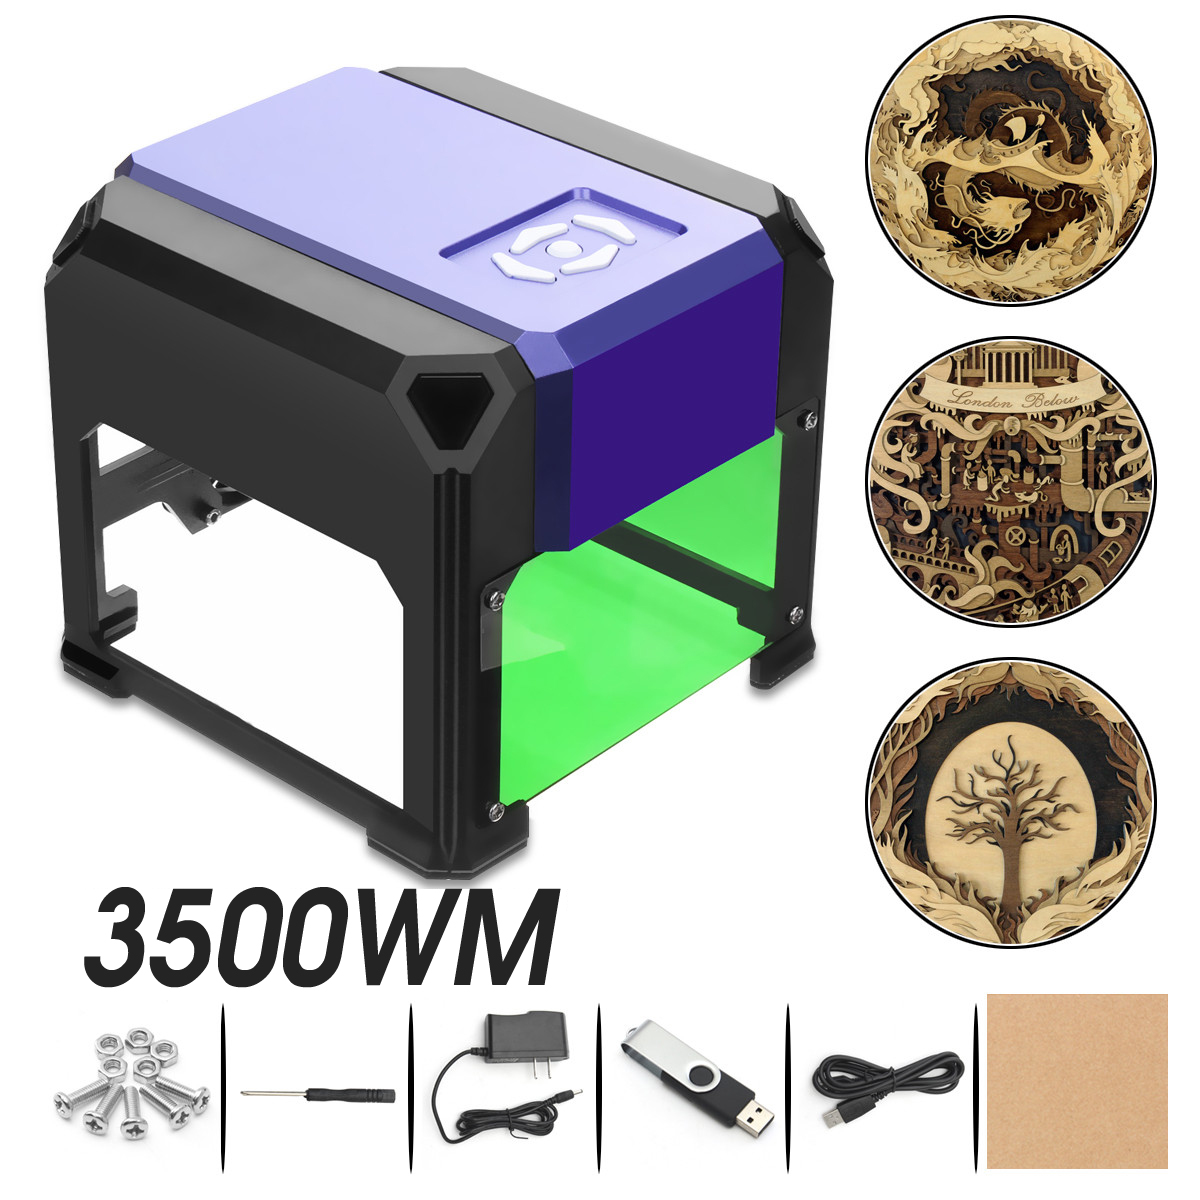 3500mW Mini Desktop Laser Engraver Printer DIY Logo Marking Cutter USB Engraving Range CNC Laser Carving Machine For WIN 80x80mm3500mW Mini Desktop Laser Engraver Printer DIY Logo Marking Cutter USB Engraving Range CNC Laser Carving Machine For WIN 80x80mm